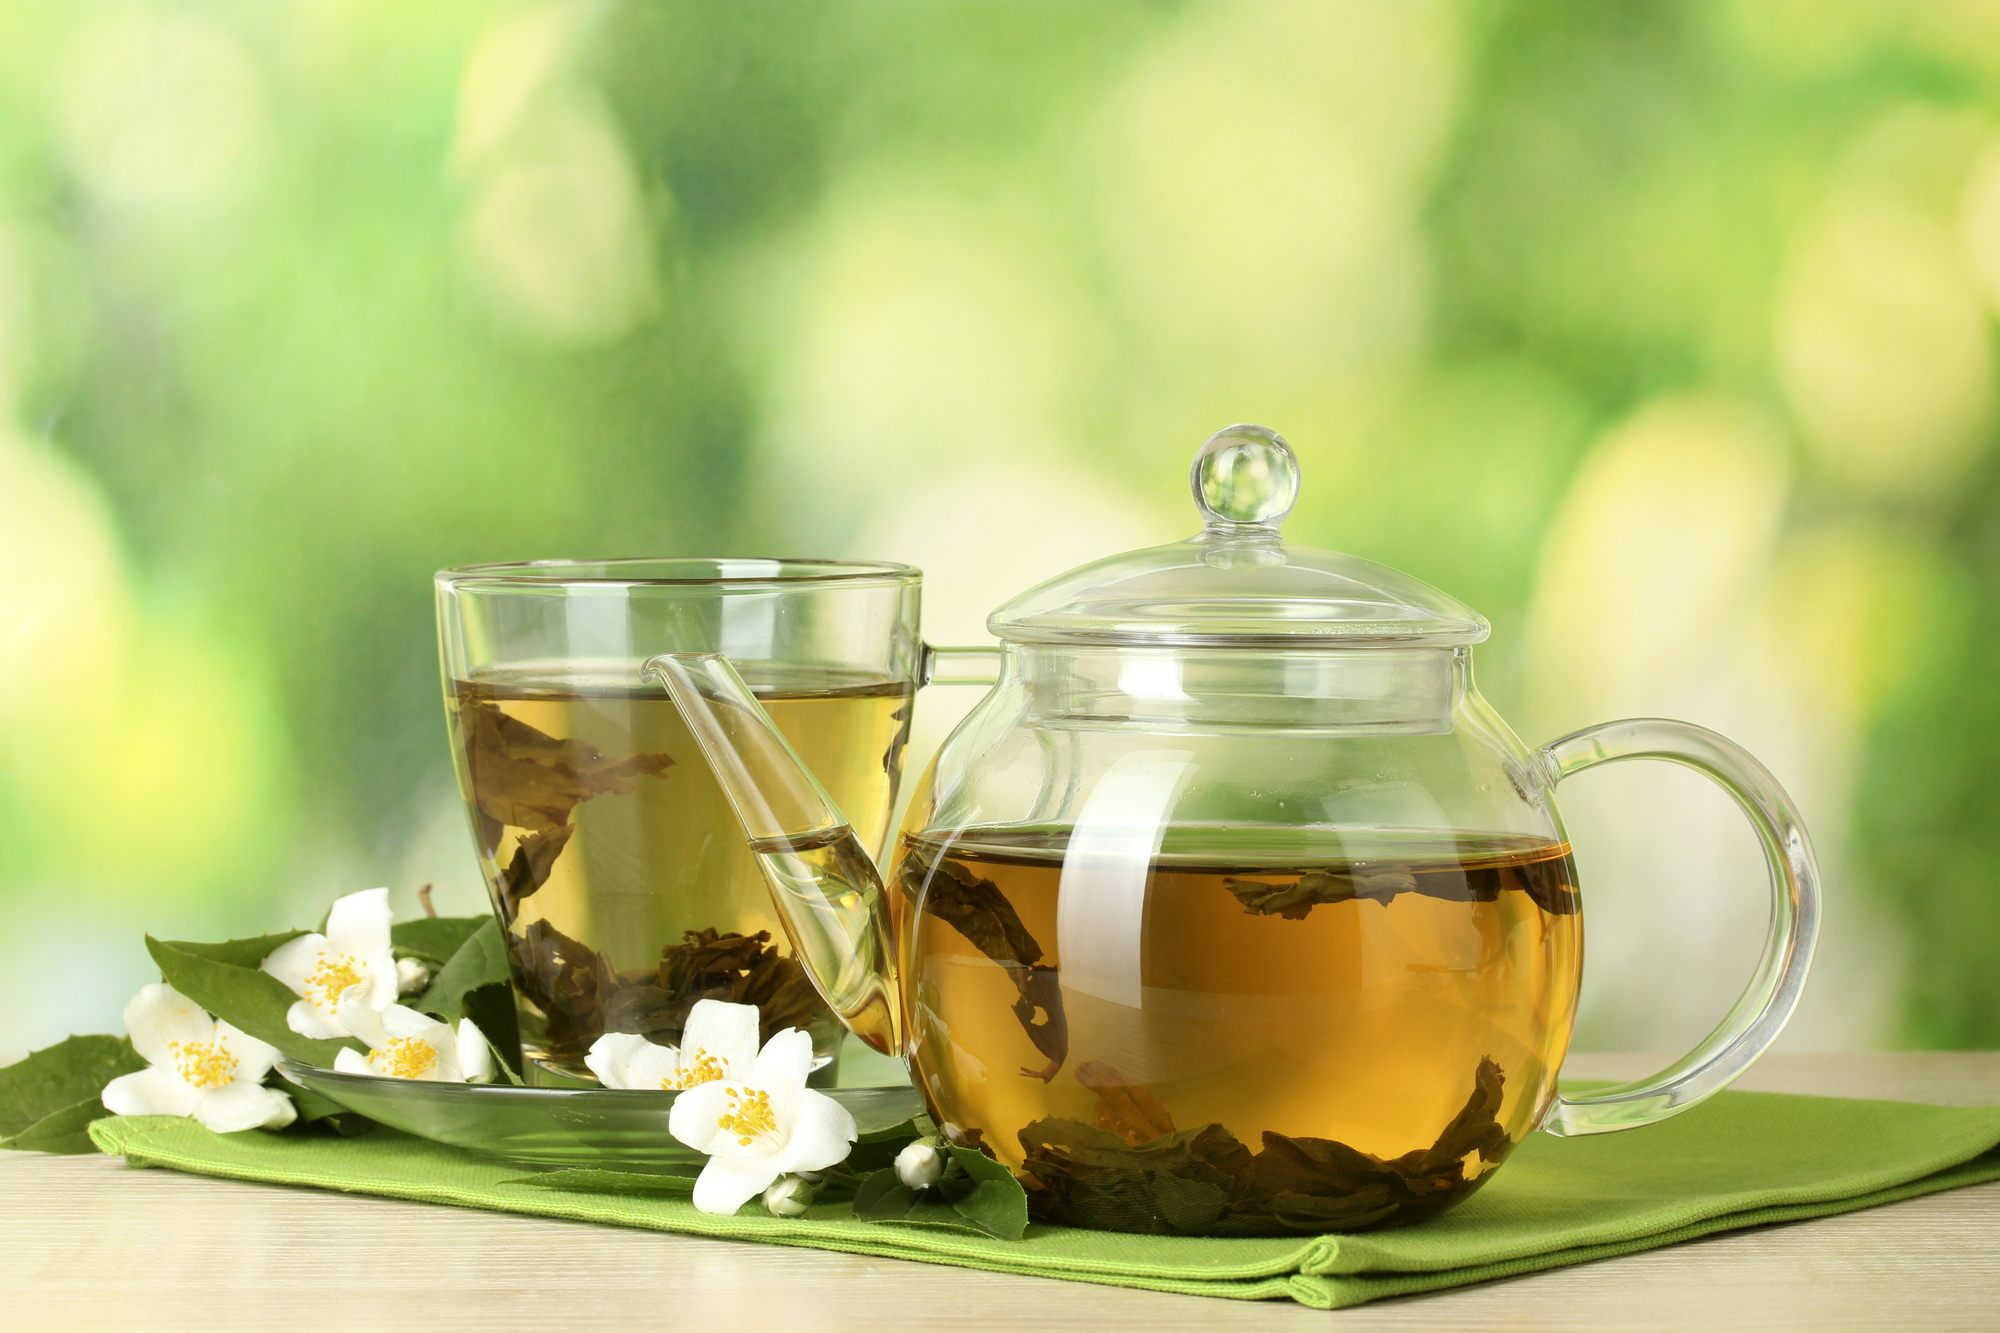 BENEFITS OF GREEN TEA FOR THE HUMAN BODY